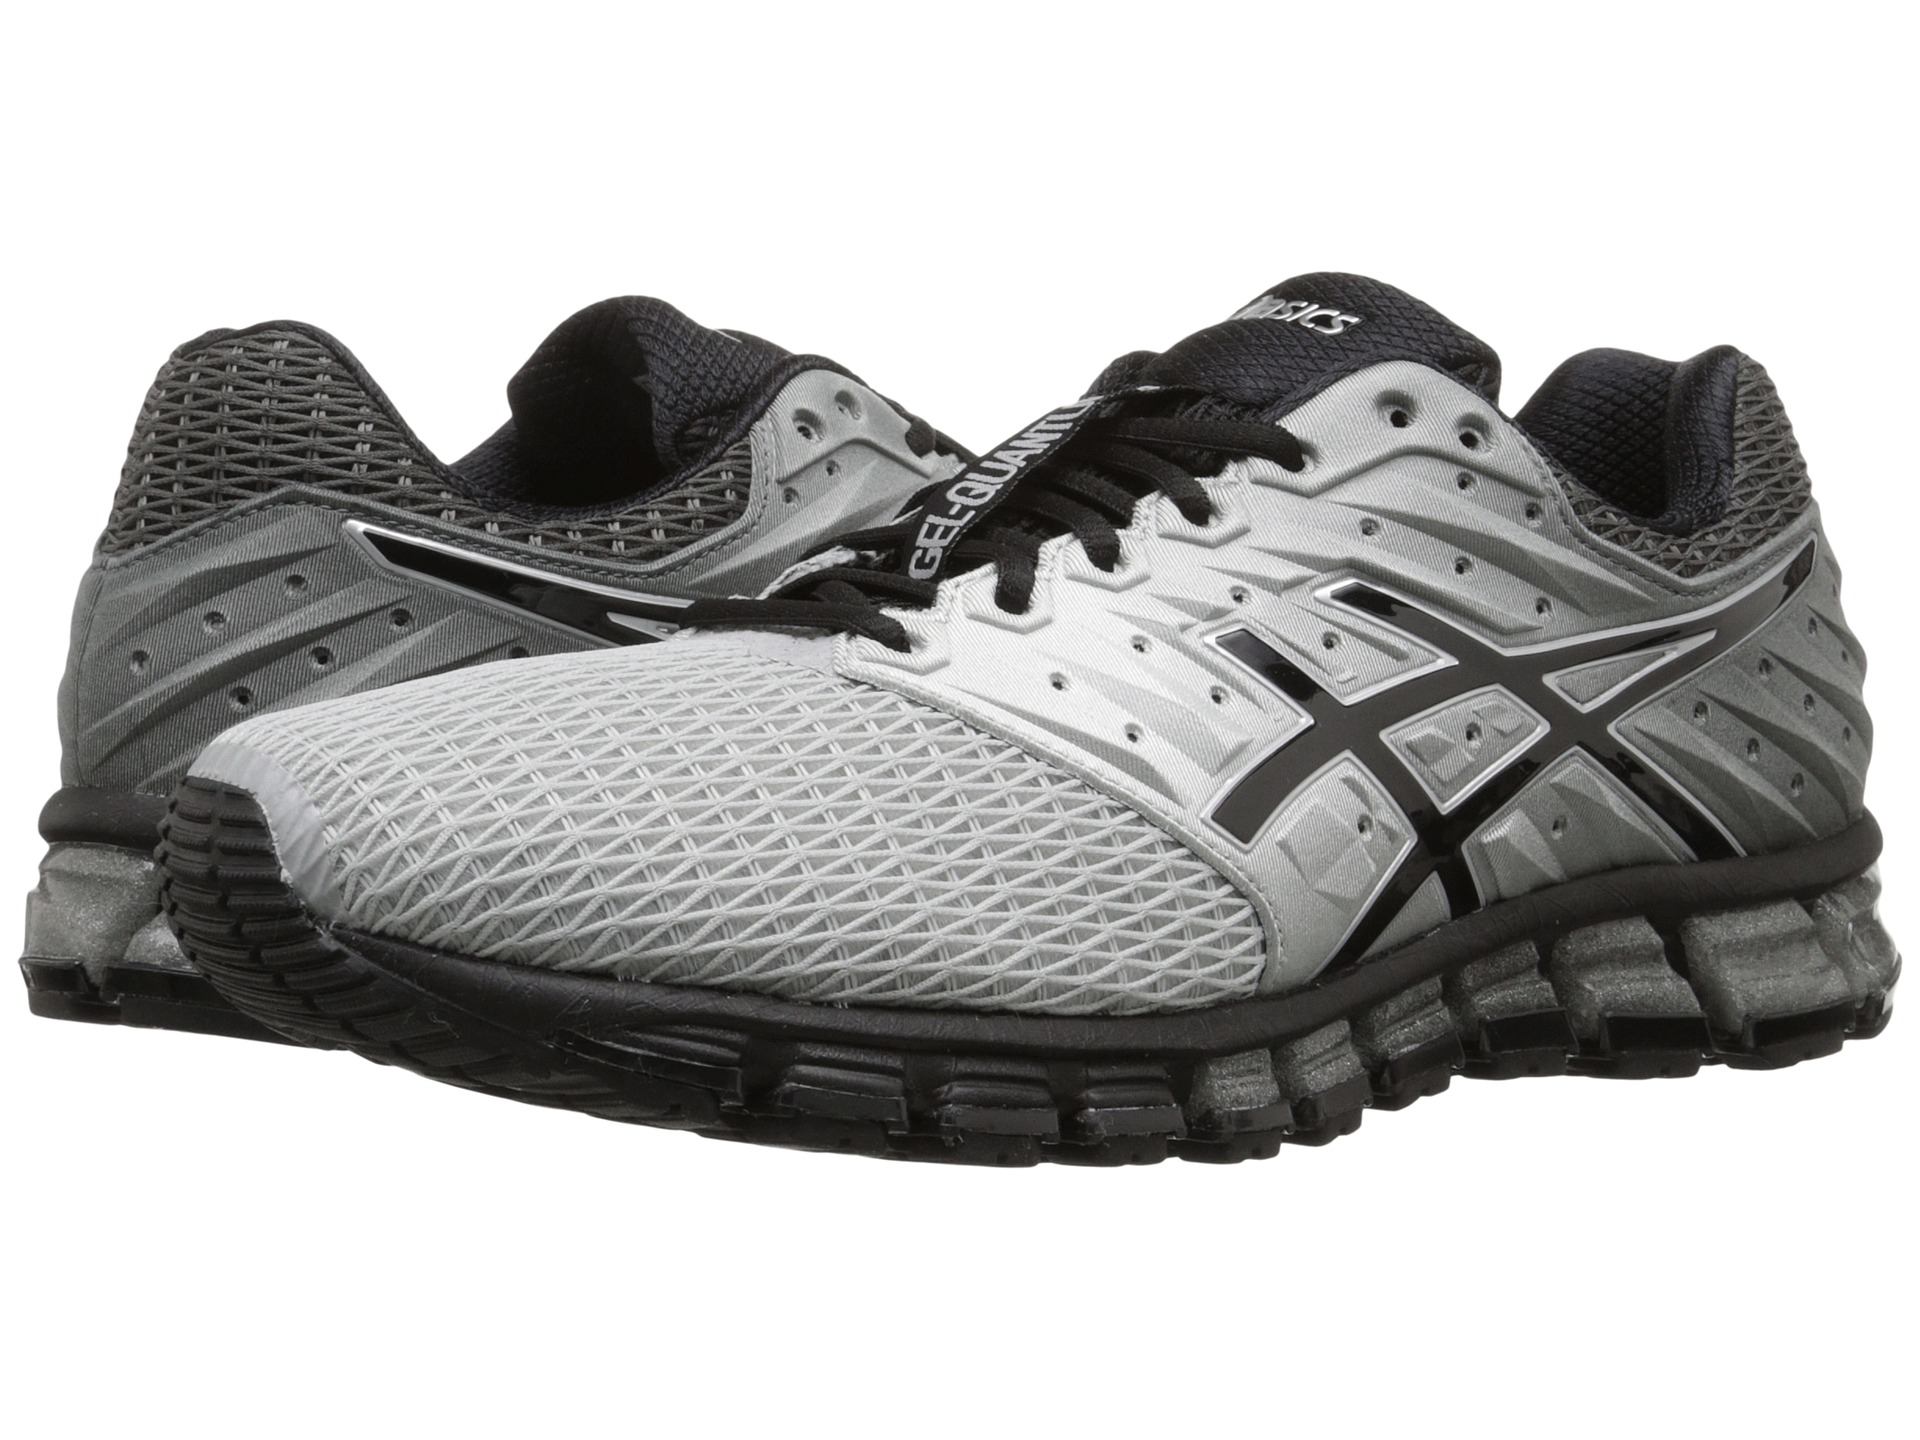 asics gel quantum 180 2 mid grey black silver free shipping both ways. Black Bedroom Furniture Sets. Home Design Ideas